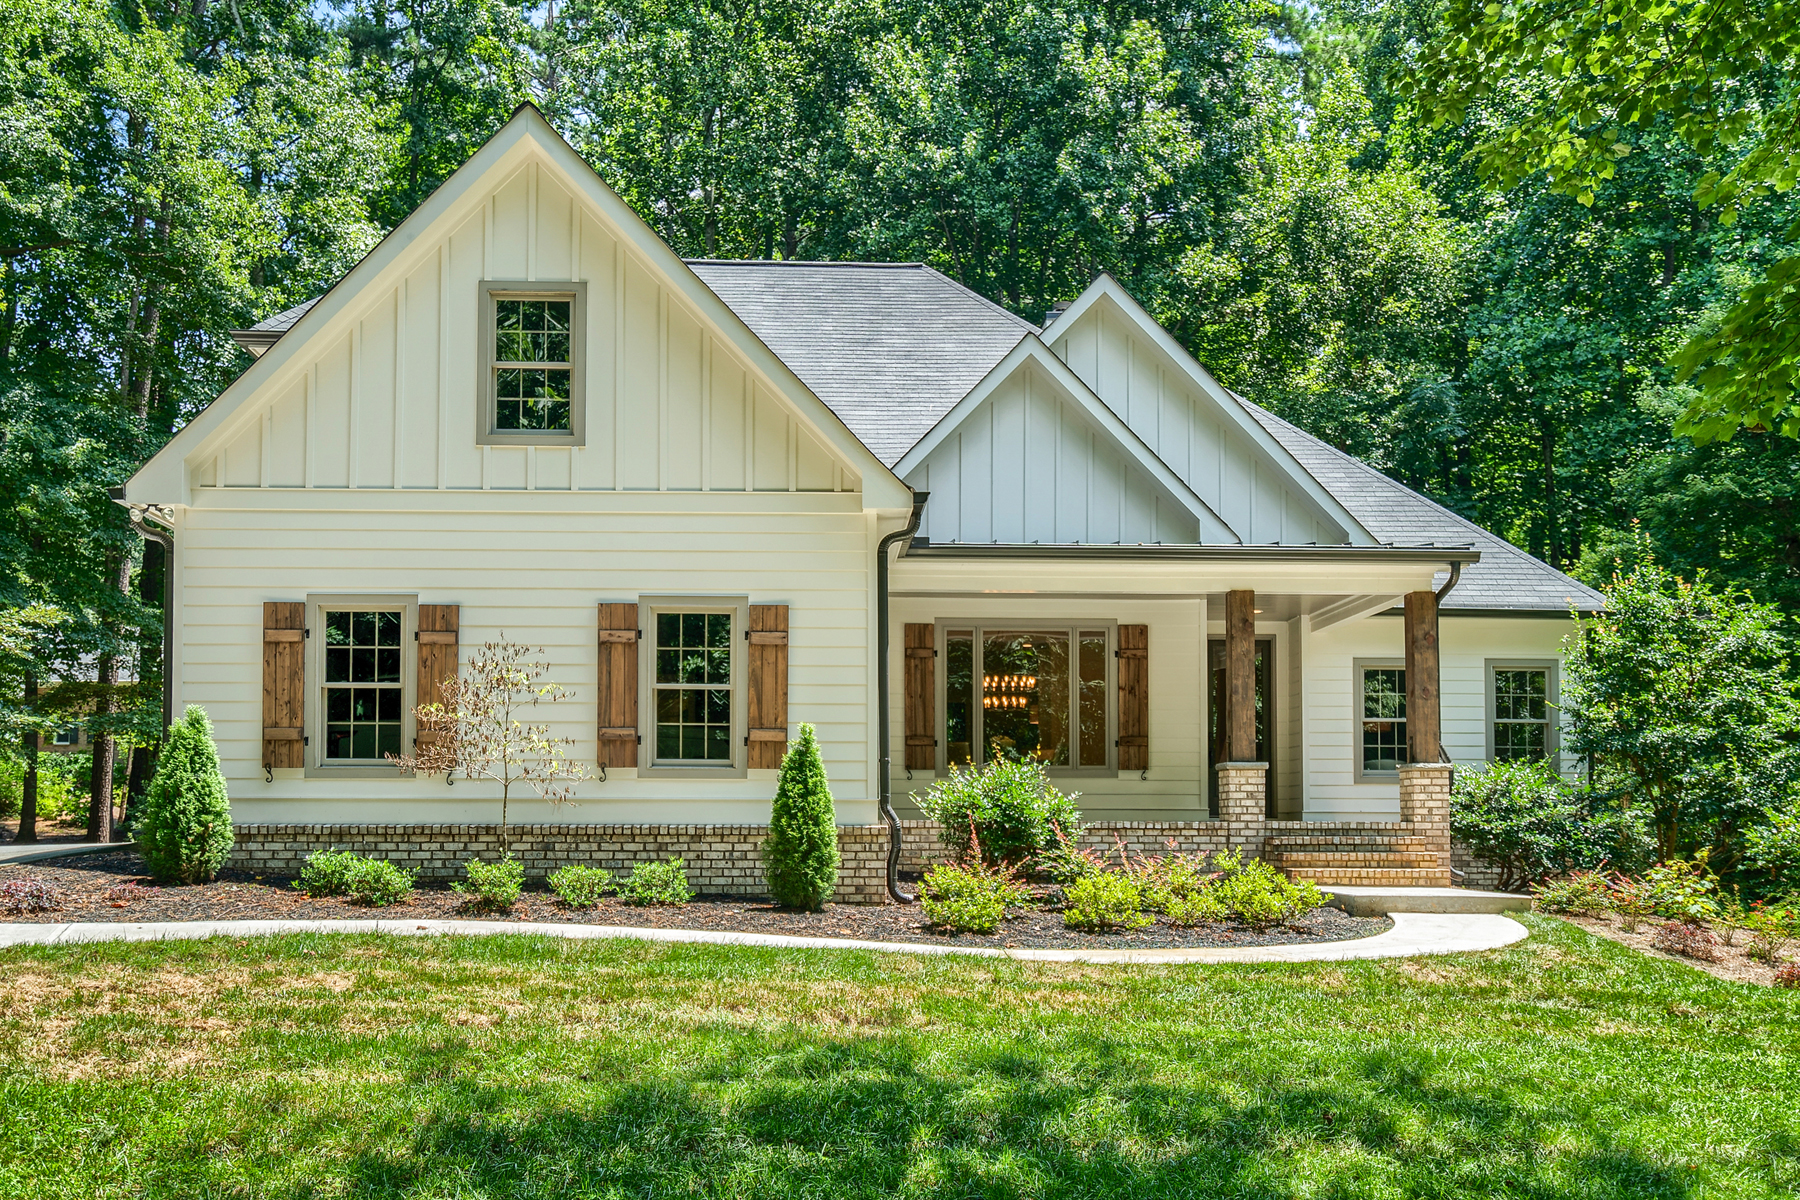 Single Family Home for Sale at Stunning Modern Farmhouse In The Heart Of Roswell 275 Spring Creek Road Roswell, Georgia 30075 United States